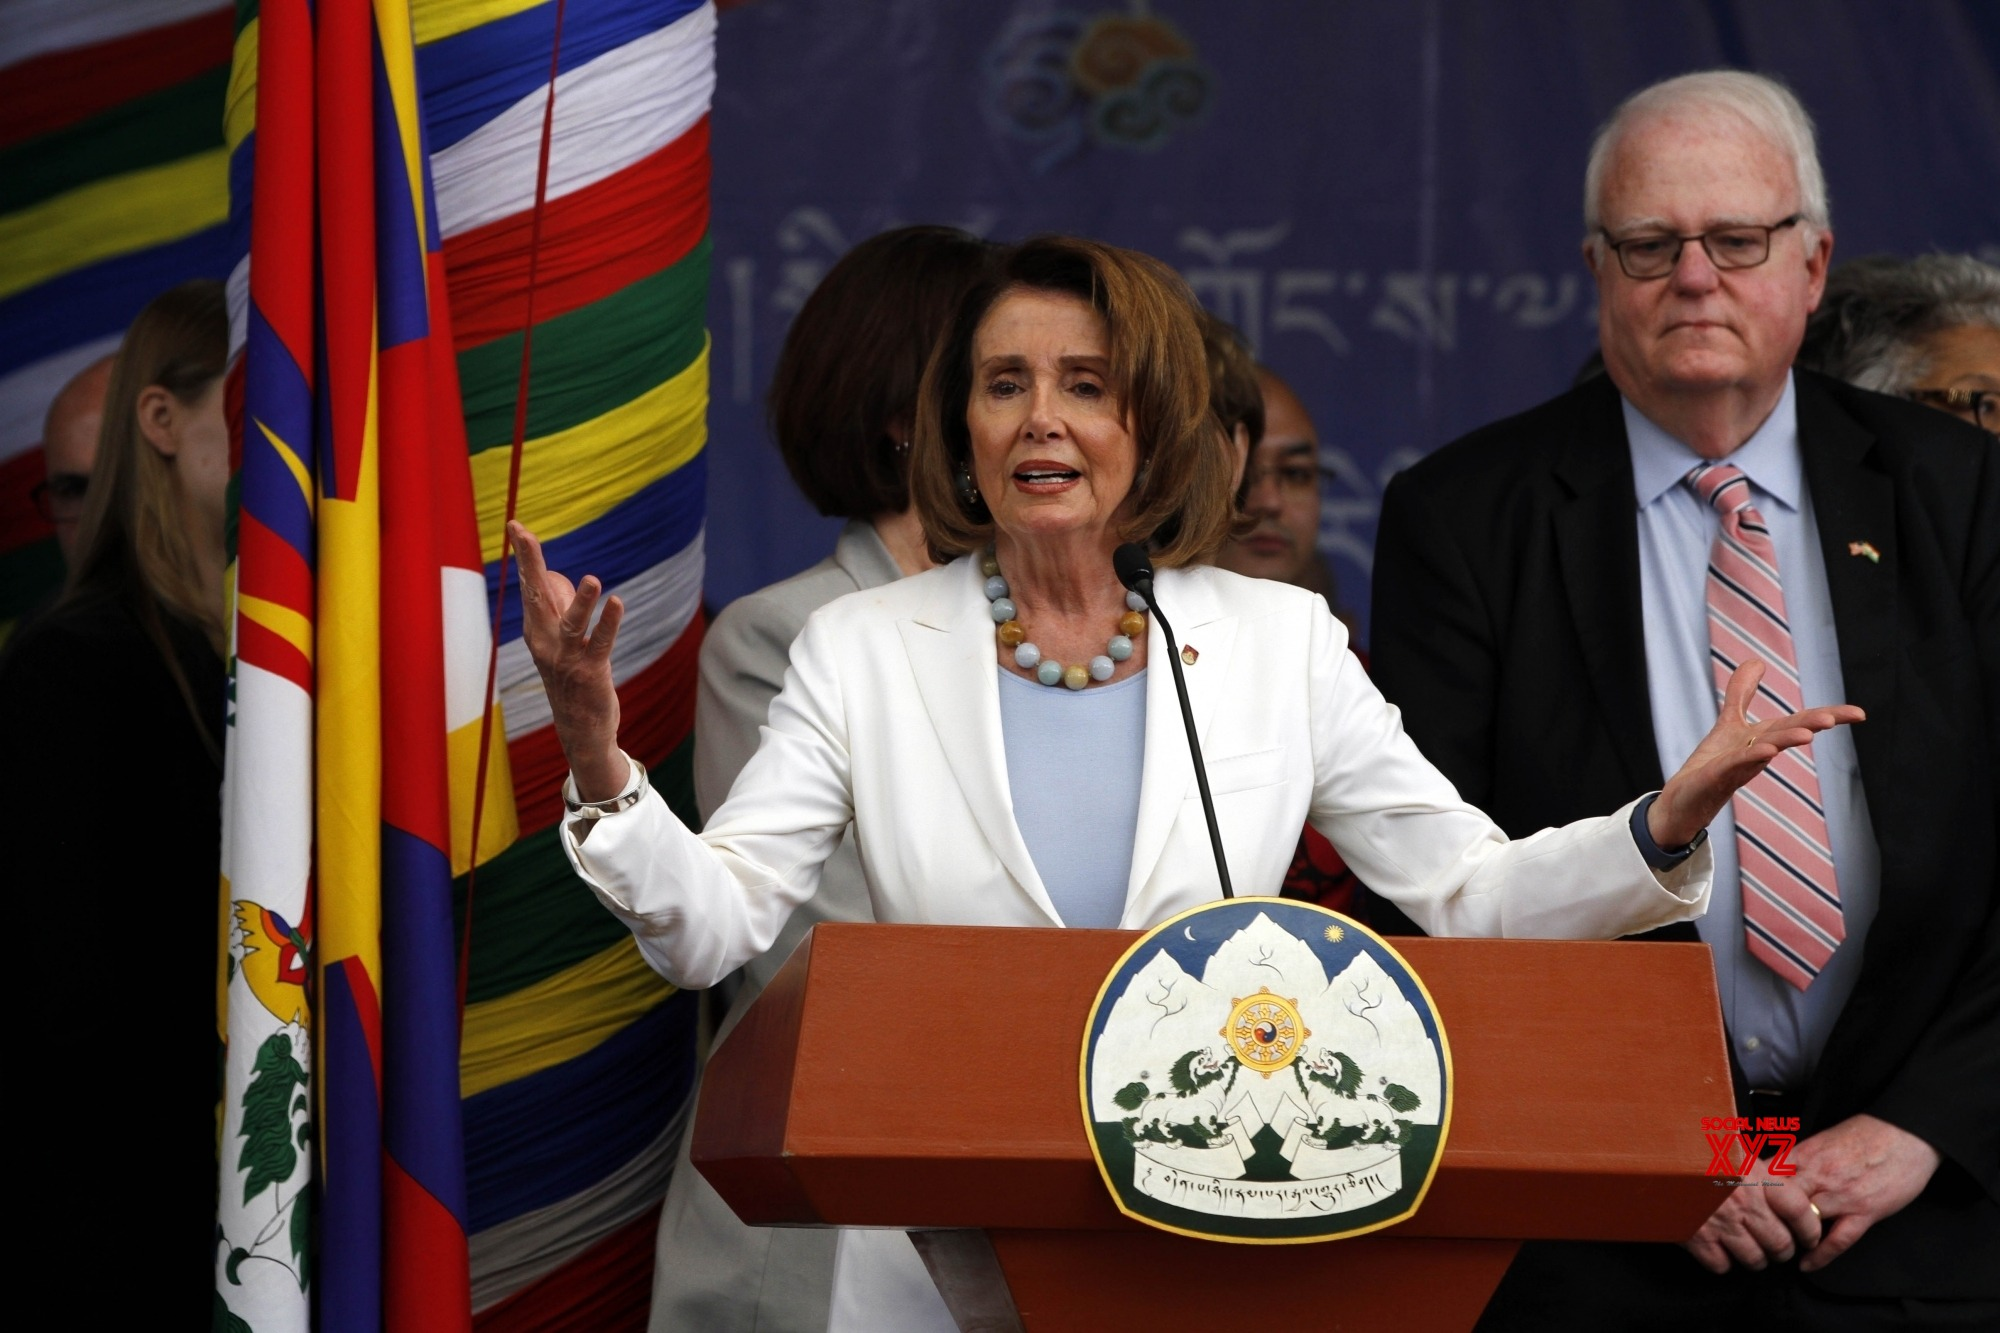 Pelosi's path back to speaker's gavel is firmly in sight